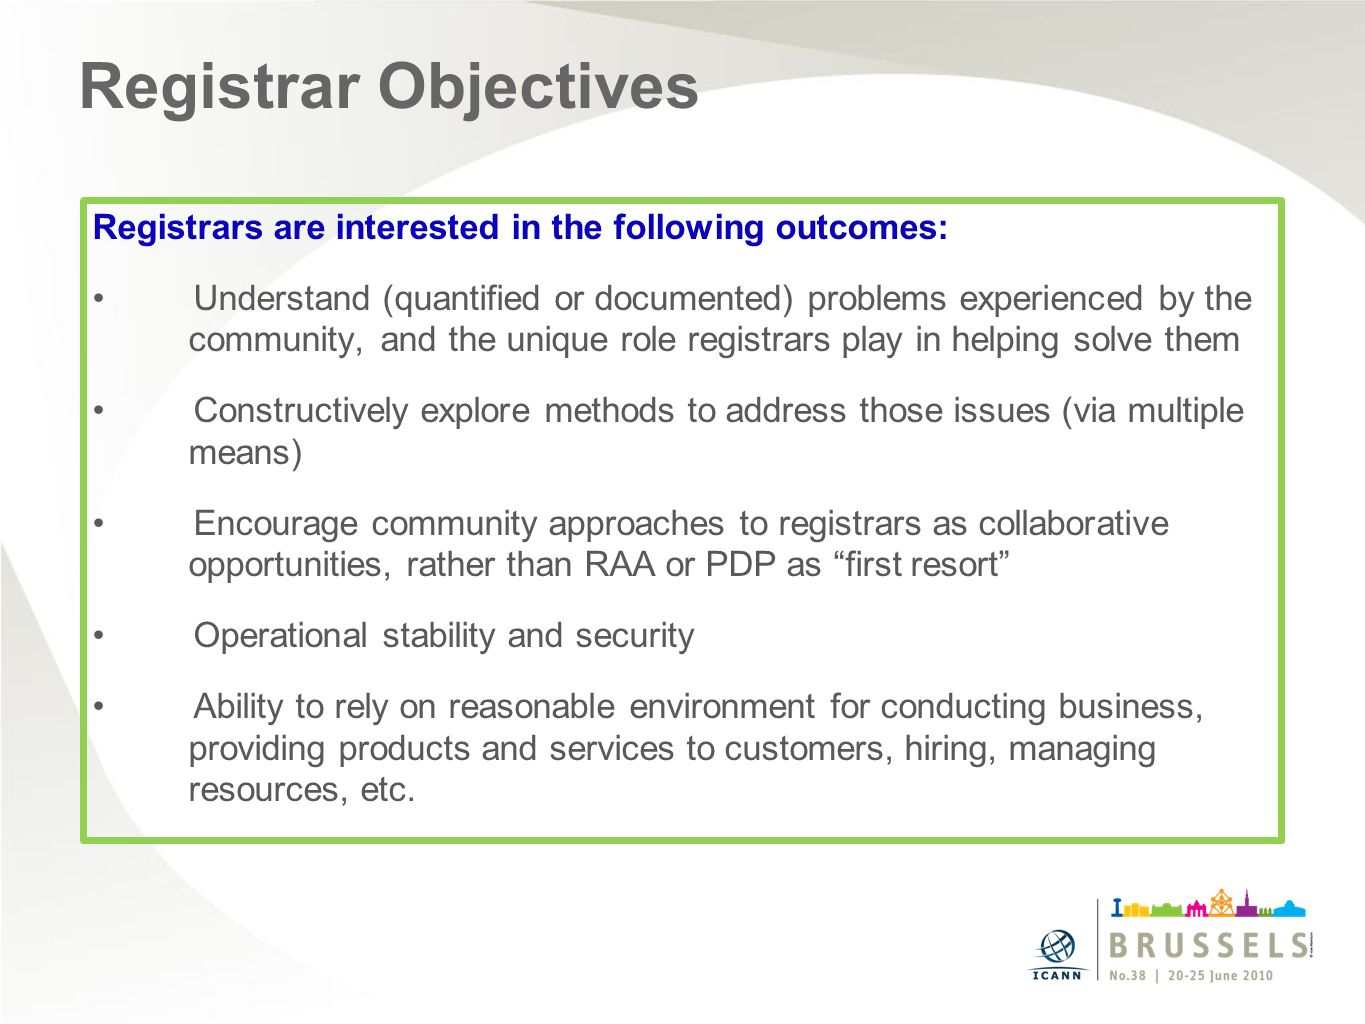 Registrar Objectives Registrars are interested in the following outcomes: Understand (quantified or documented) problems experienced by the community, and the unique role registrars play in helping solve them Constructively explore methods to address those issues (via multiple means) Encourage community approaches to registrars as collaborative opportunities, rather than RAA or PDP as first resort Operational stability and security Ability to rely on reasonable environment for conducting business, providing products and services to customers, hiring, managing resources, etc.